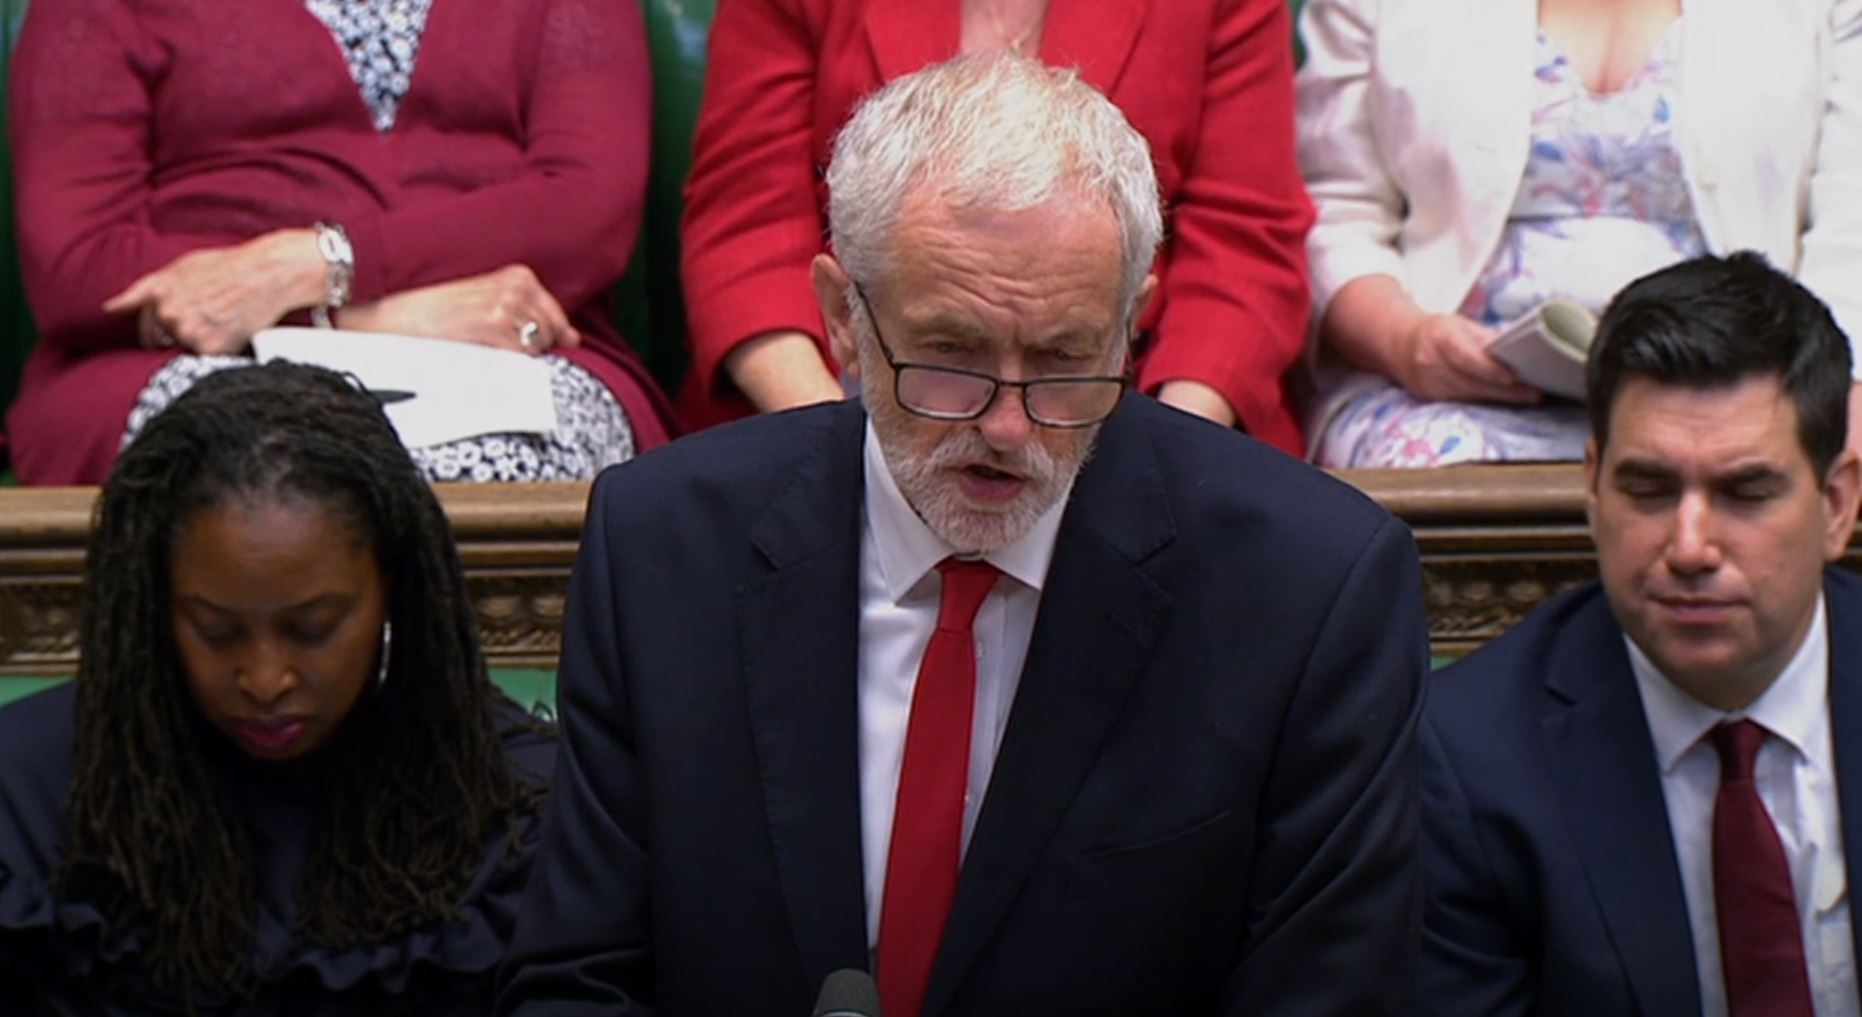 Labour anti-Semitism backlash after shock claims — BBC Panorama